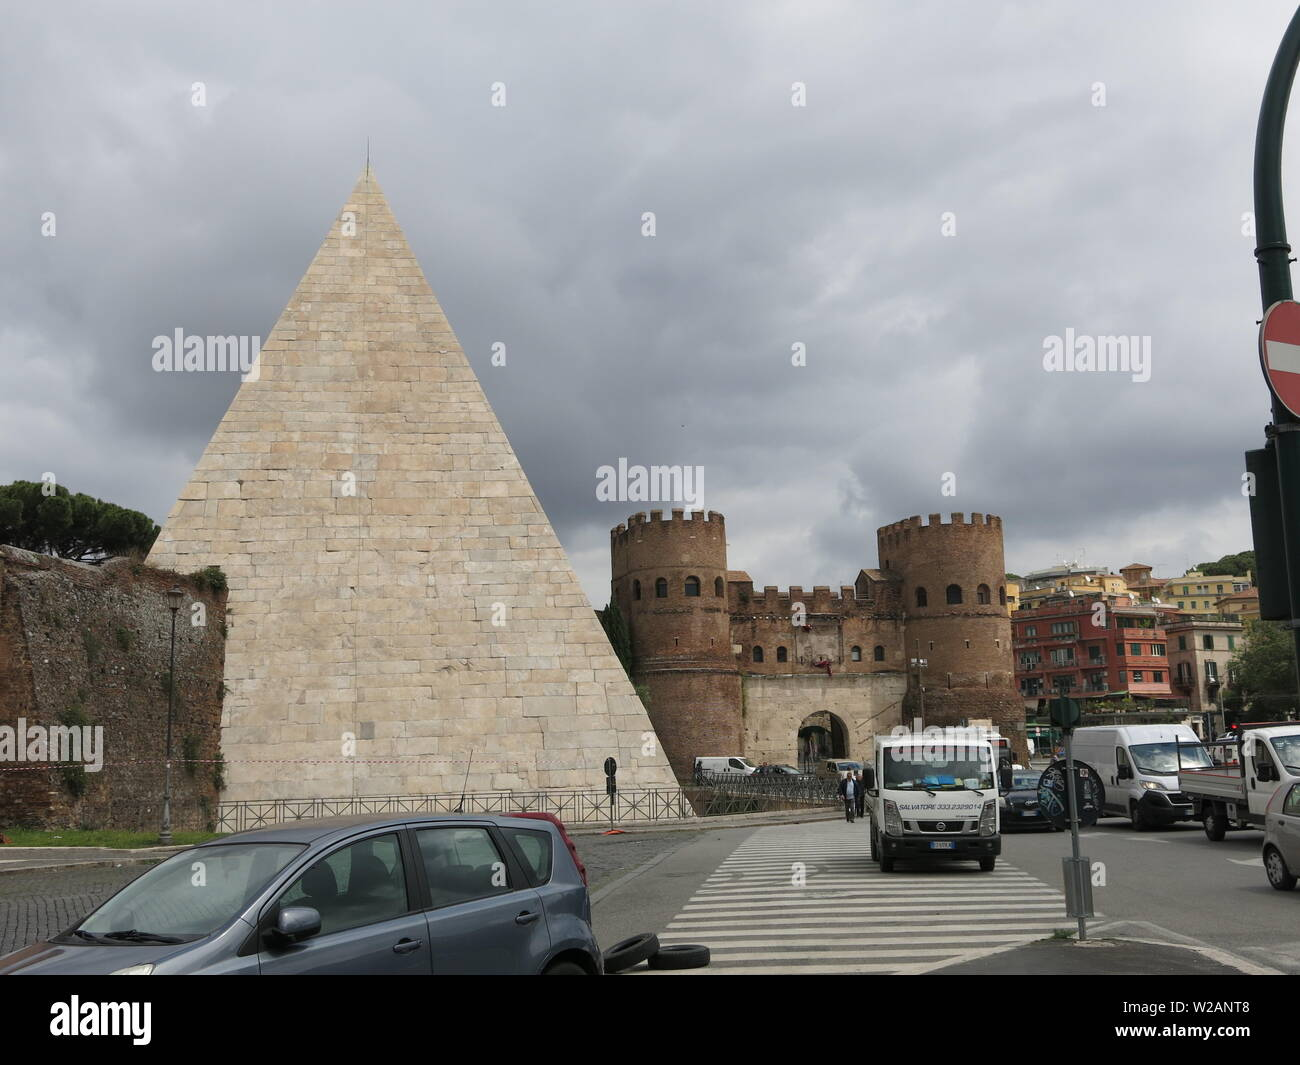 The Pyramid Cestius is an ancient landmark situated between two of Rome's busy roads, the Via Ostiensis and the Via Marmorata - Stock Image